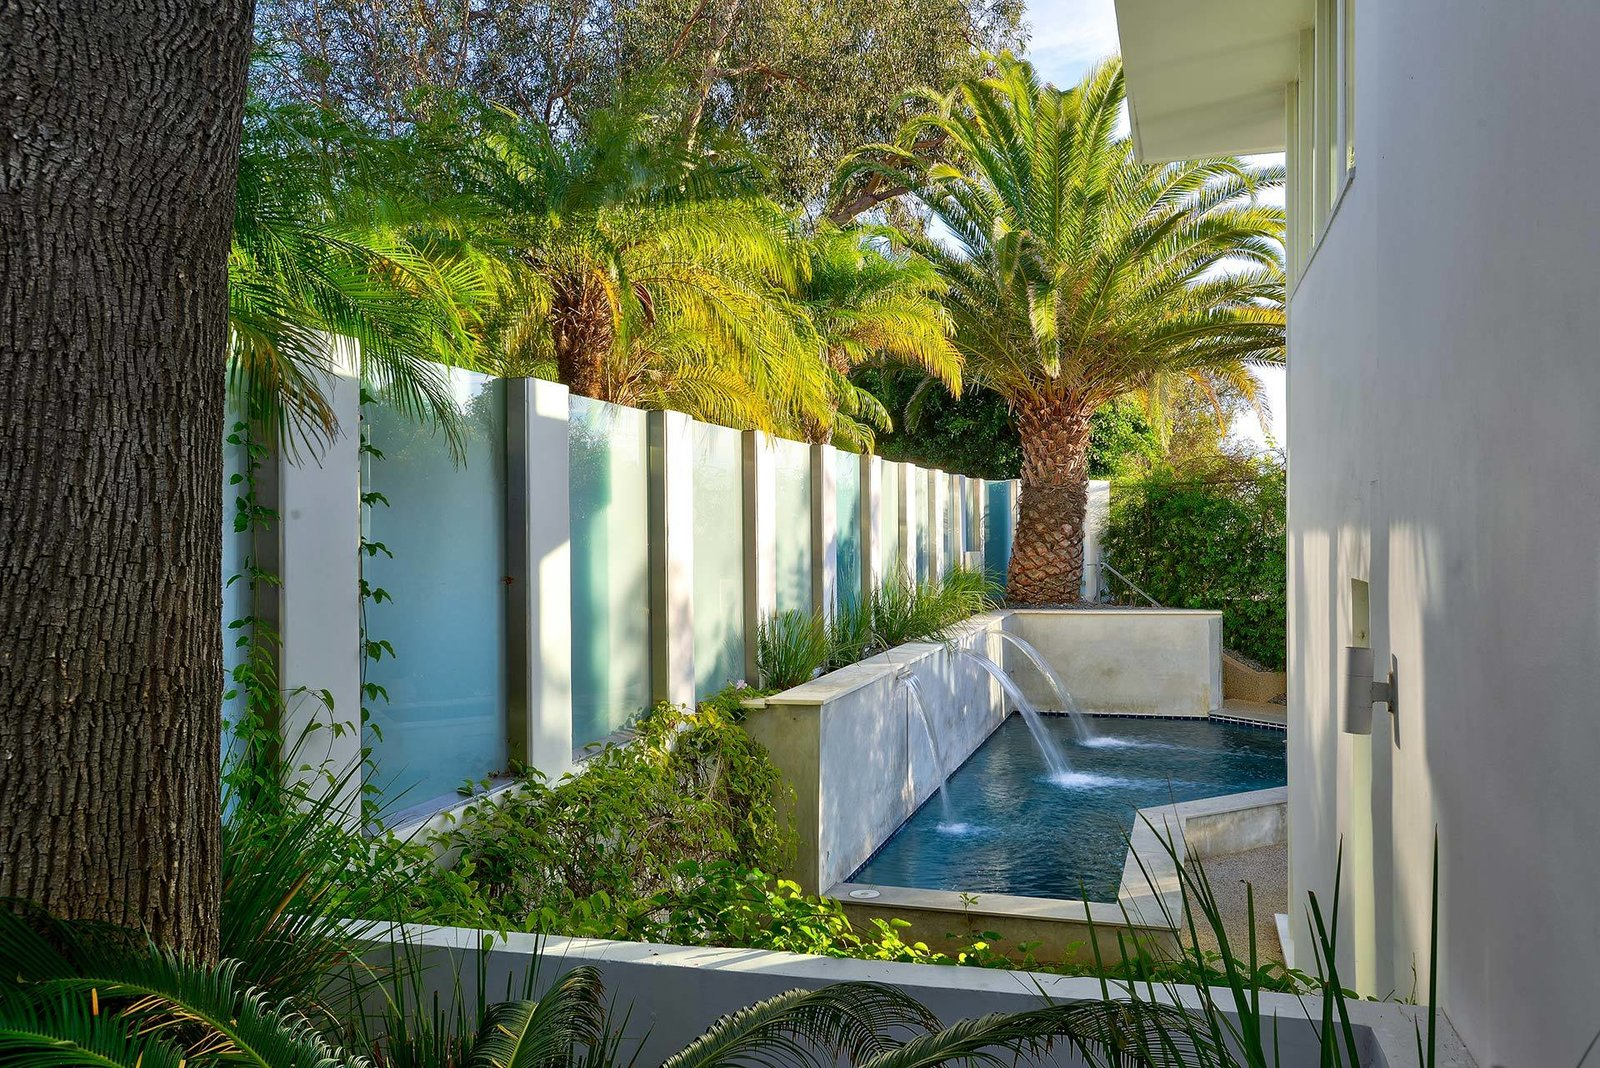 Photo 12 of 13 in Actor Brendan Fraser's Former Beverly Hills Home Is For Sale For $4.25 Million